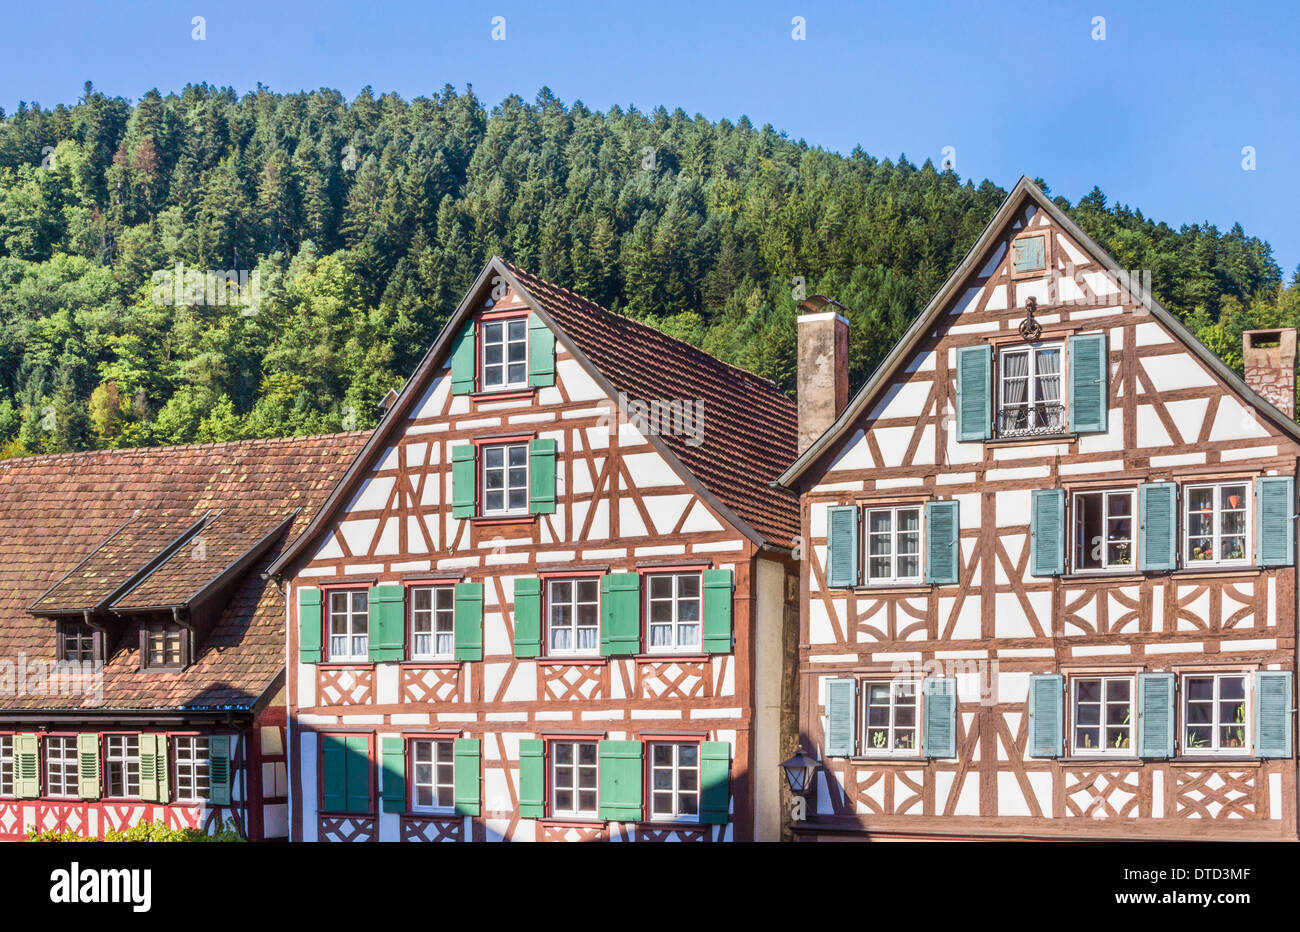 historic half-timbered houses at the market square of schiltach, black forest, baden-wuerttemberg, germany - Stock Image